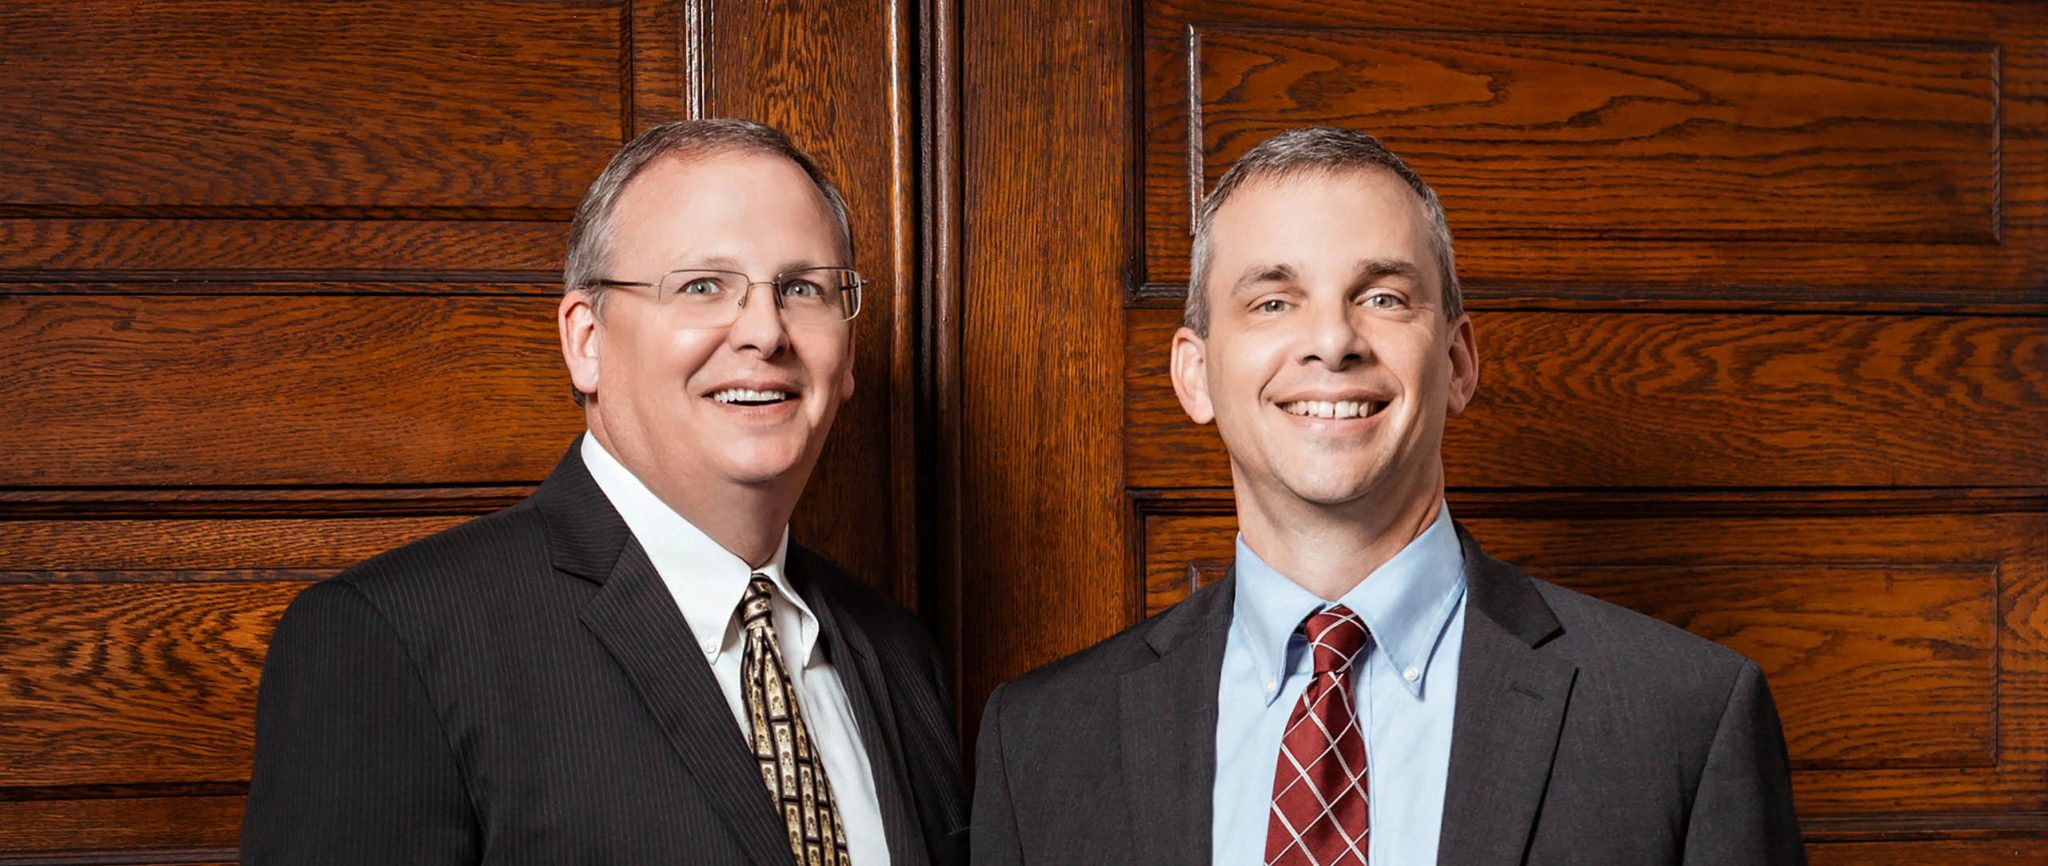 Law Office of Marty Jacobs and Mark Pfeifer